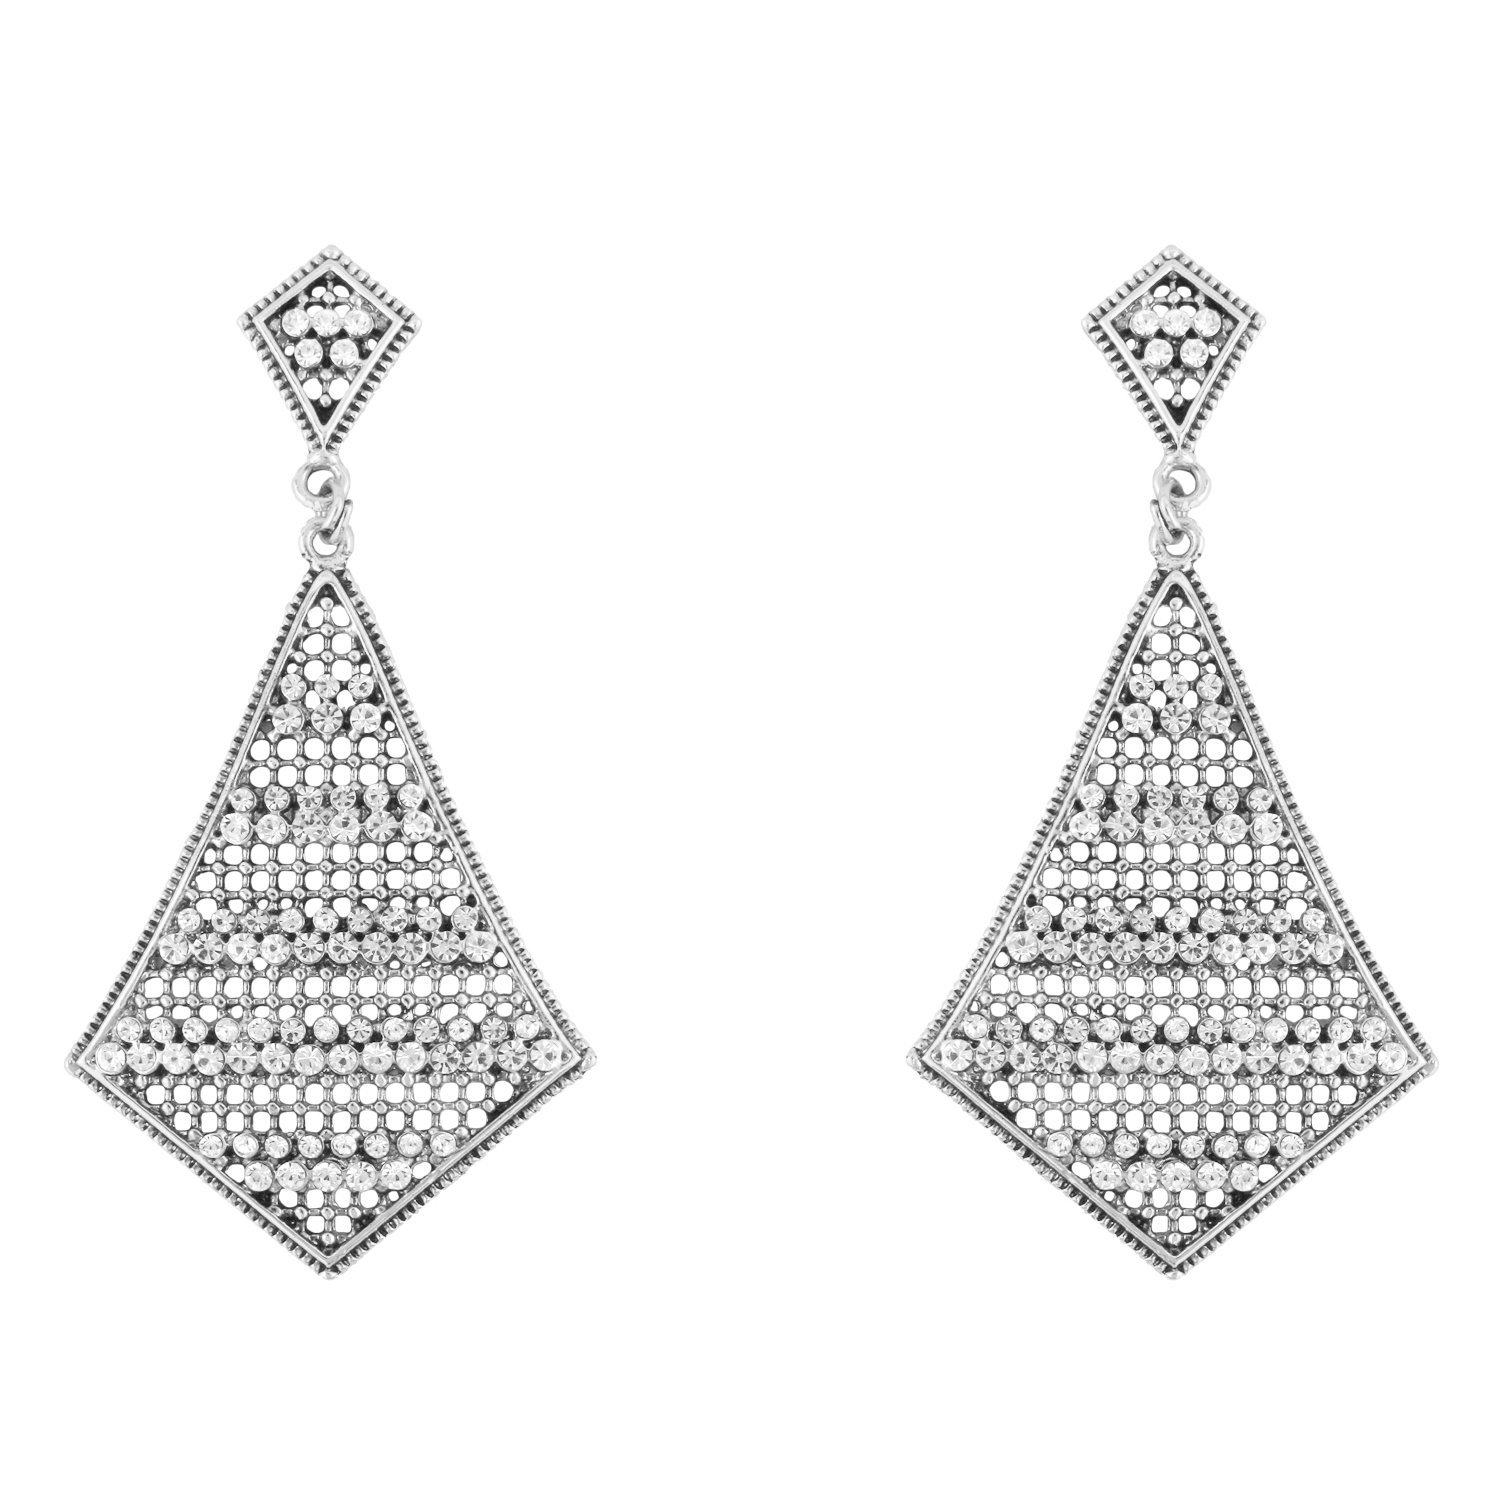 Donna Fashion White Kite Diamond Rhodium Plated Dangler Earrings with Crystals for Women ER30069R